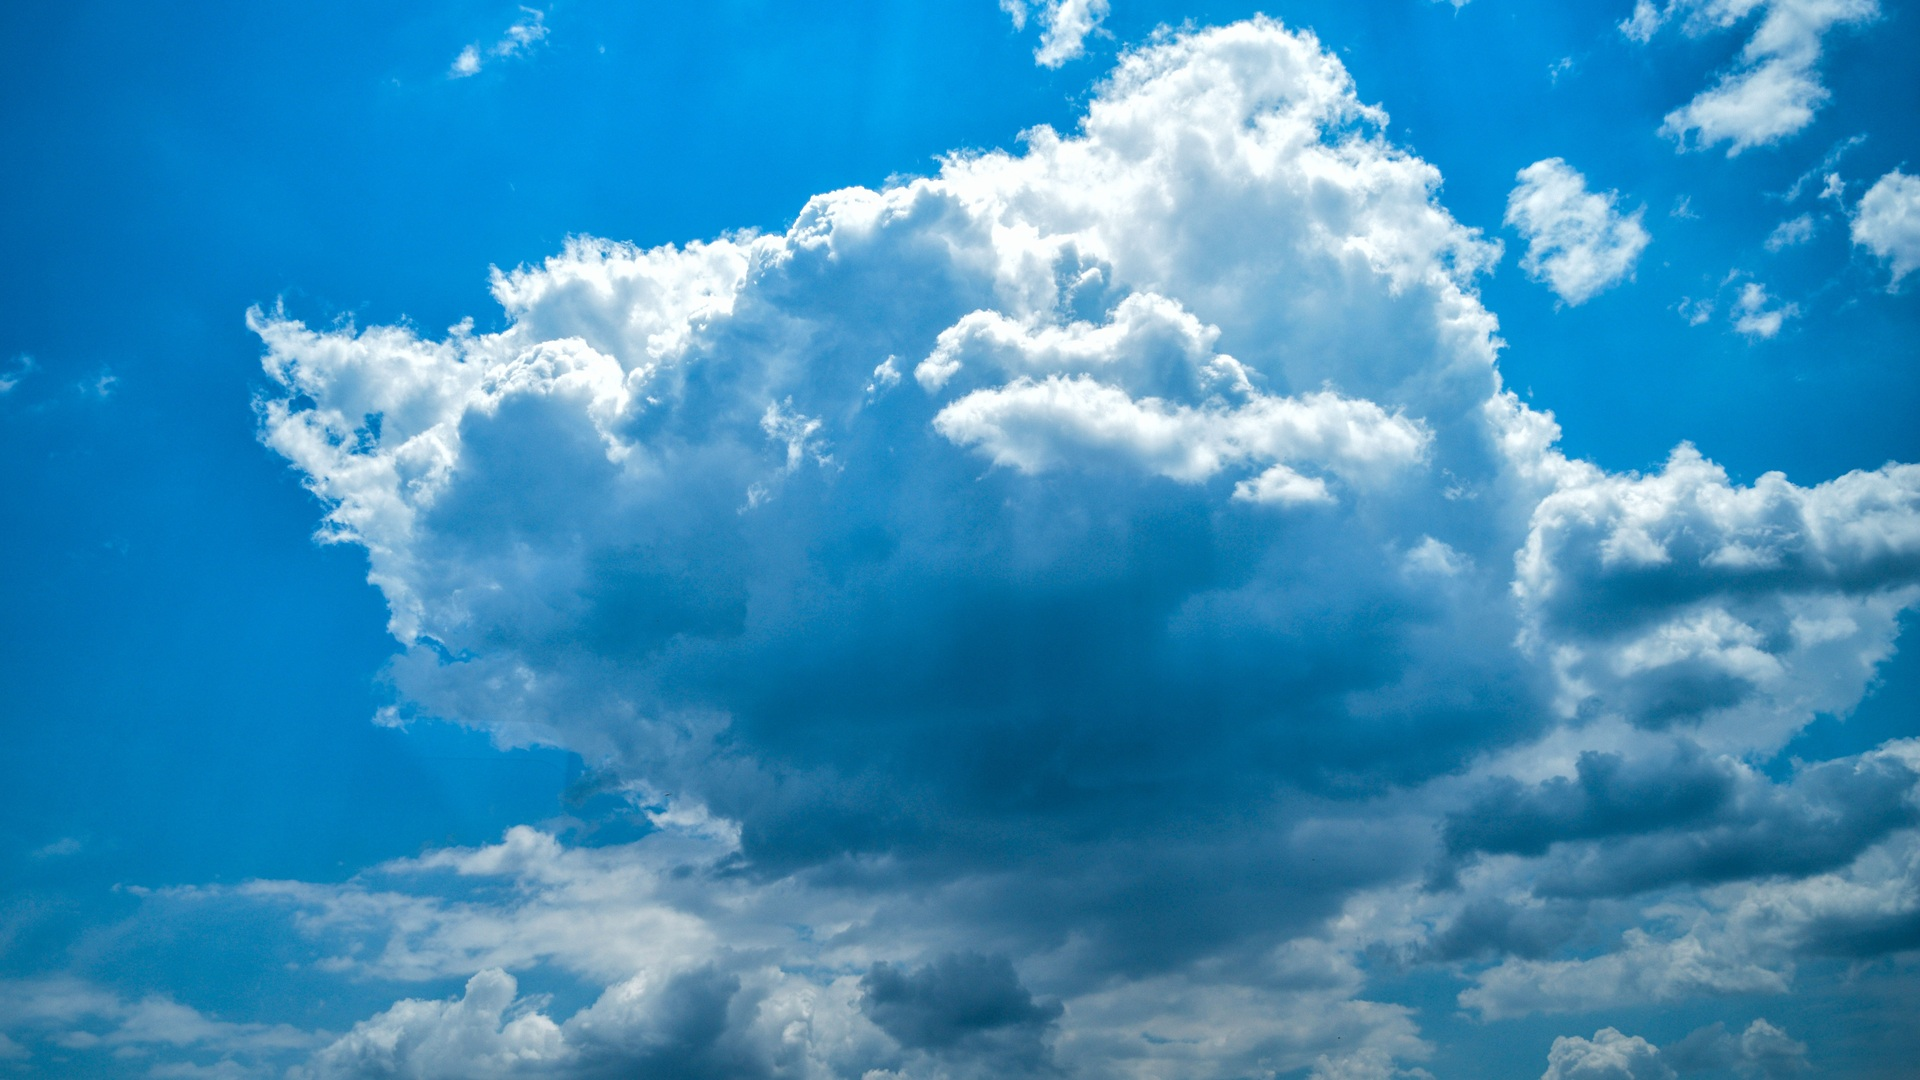 Wallpaper Clouds Blue Sky Hd 5k Nature 3492: 1920x1080 Clouds Summer Weather 5k Laptop Full HD 1080P HD